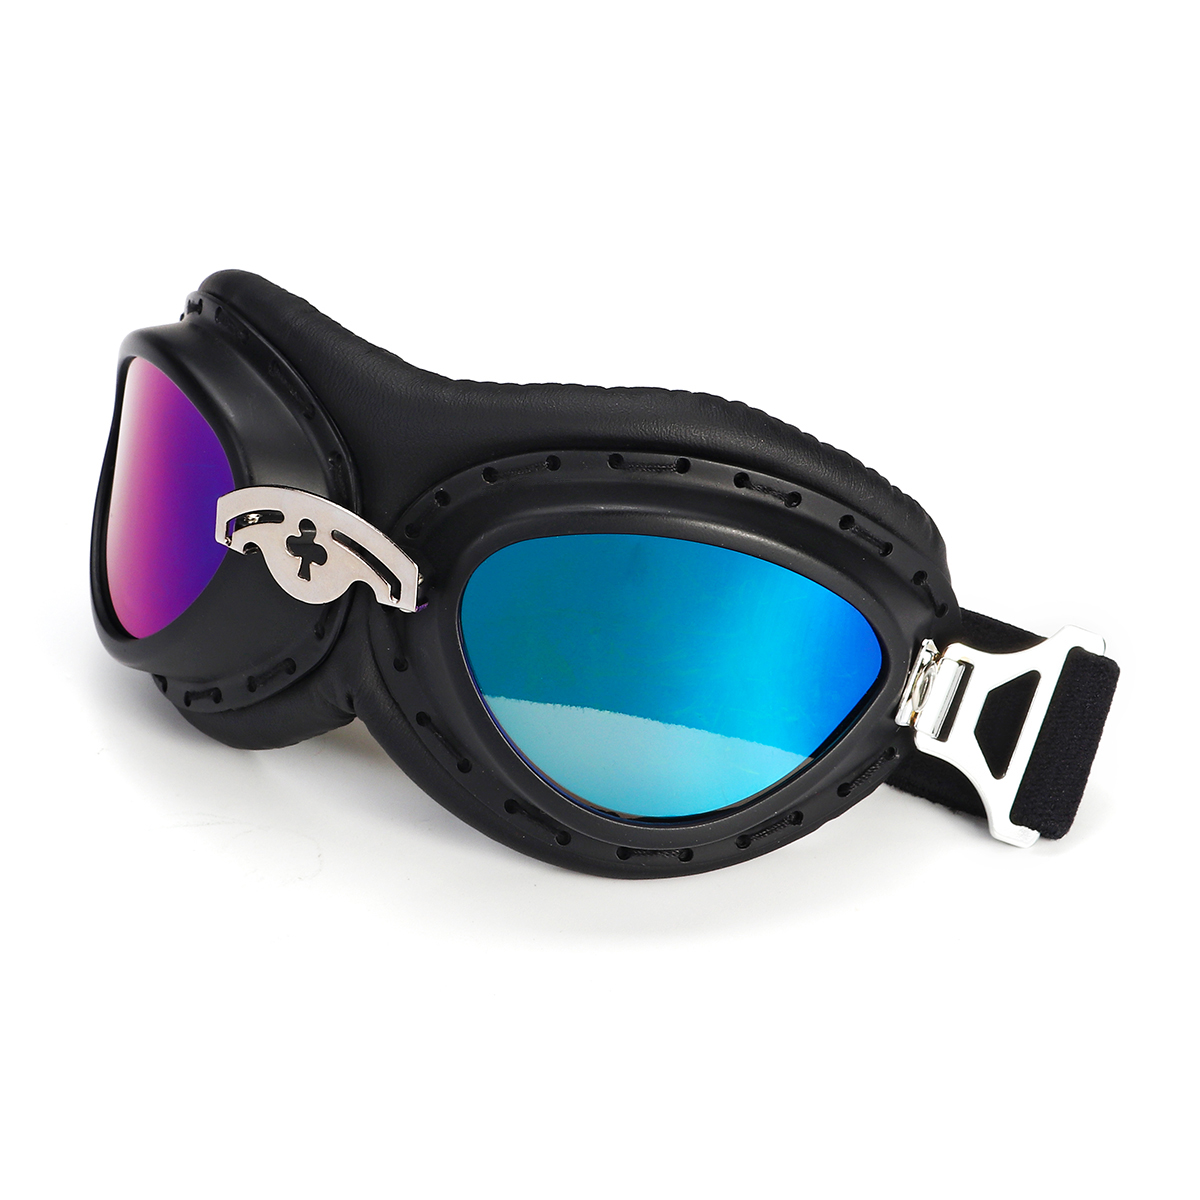 Motorcycle Goggles Glasses Vintage Motorbike UV Protection